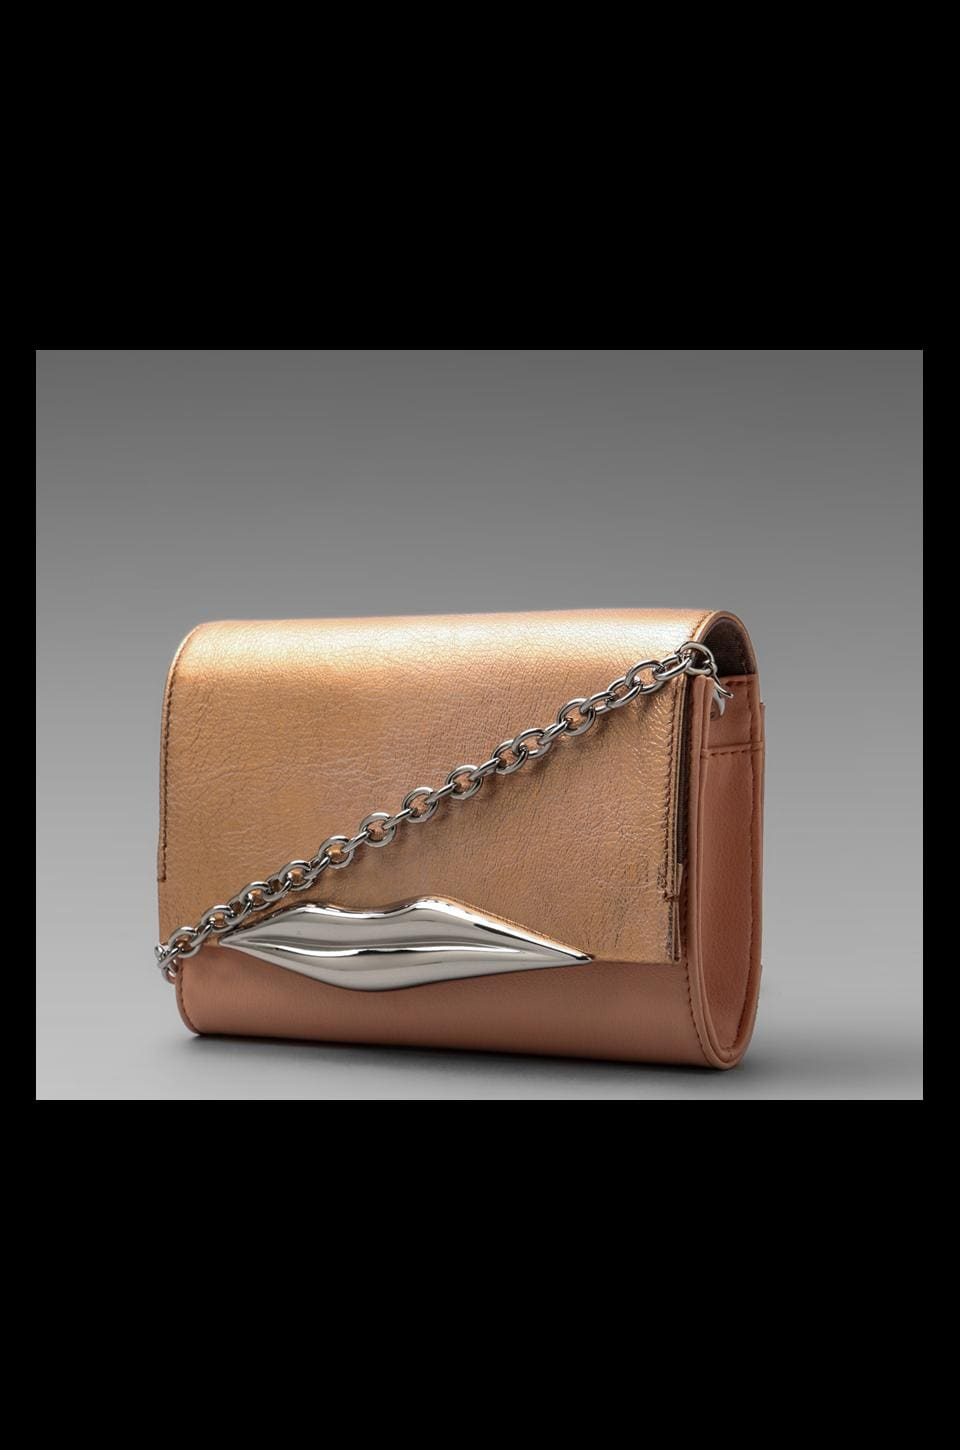 Diane von Furstenberg Lips Mini Soft Metallic Bag in Rose Gold